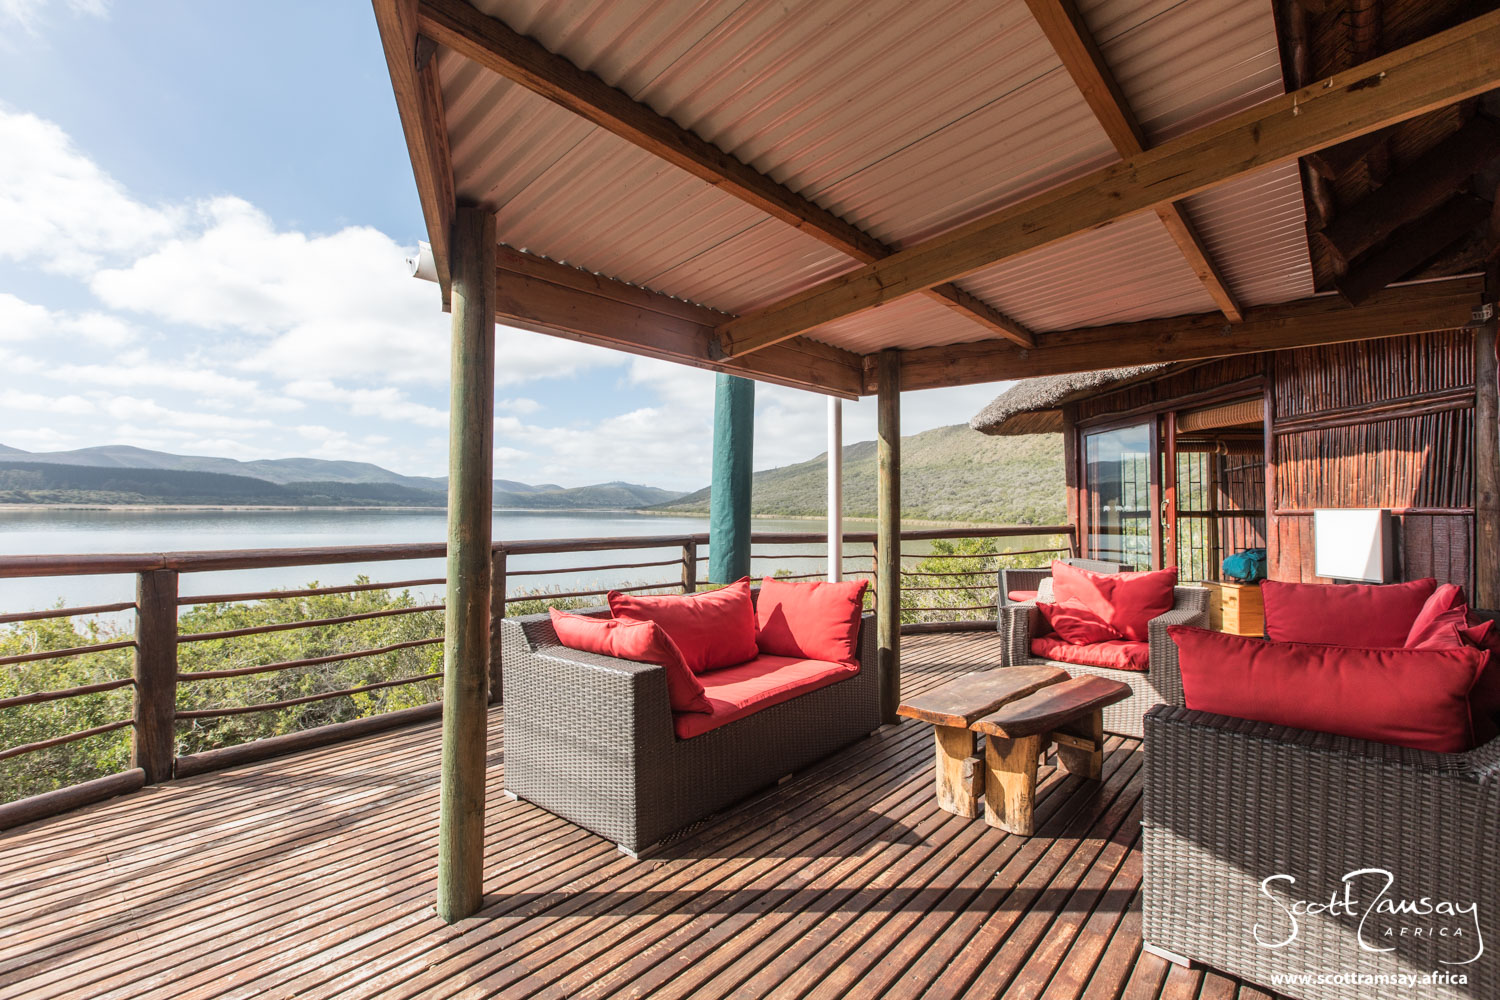 The deck at Mvubu Lodge, looking out over Groenvlei